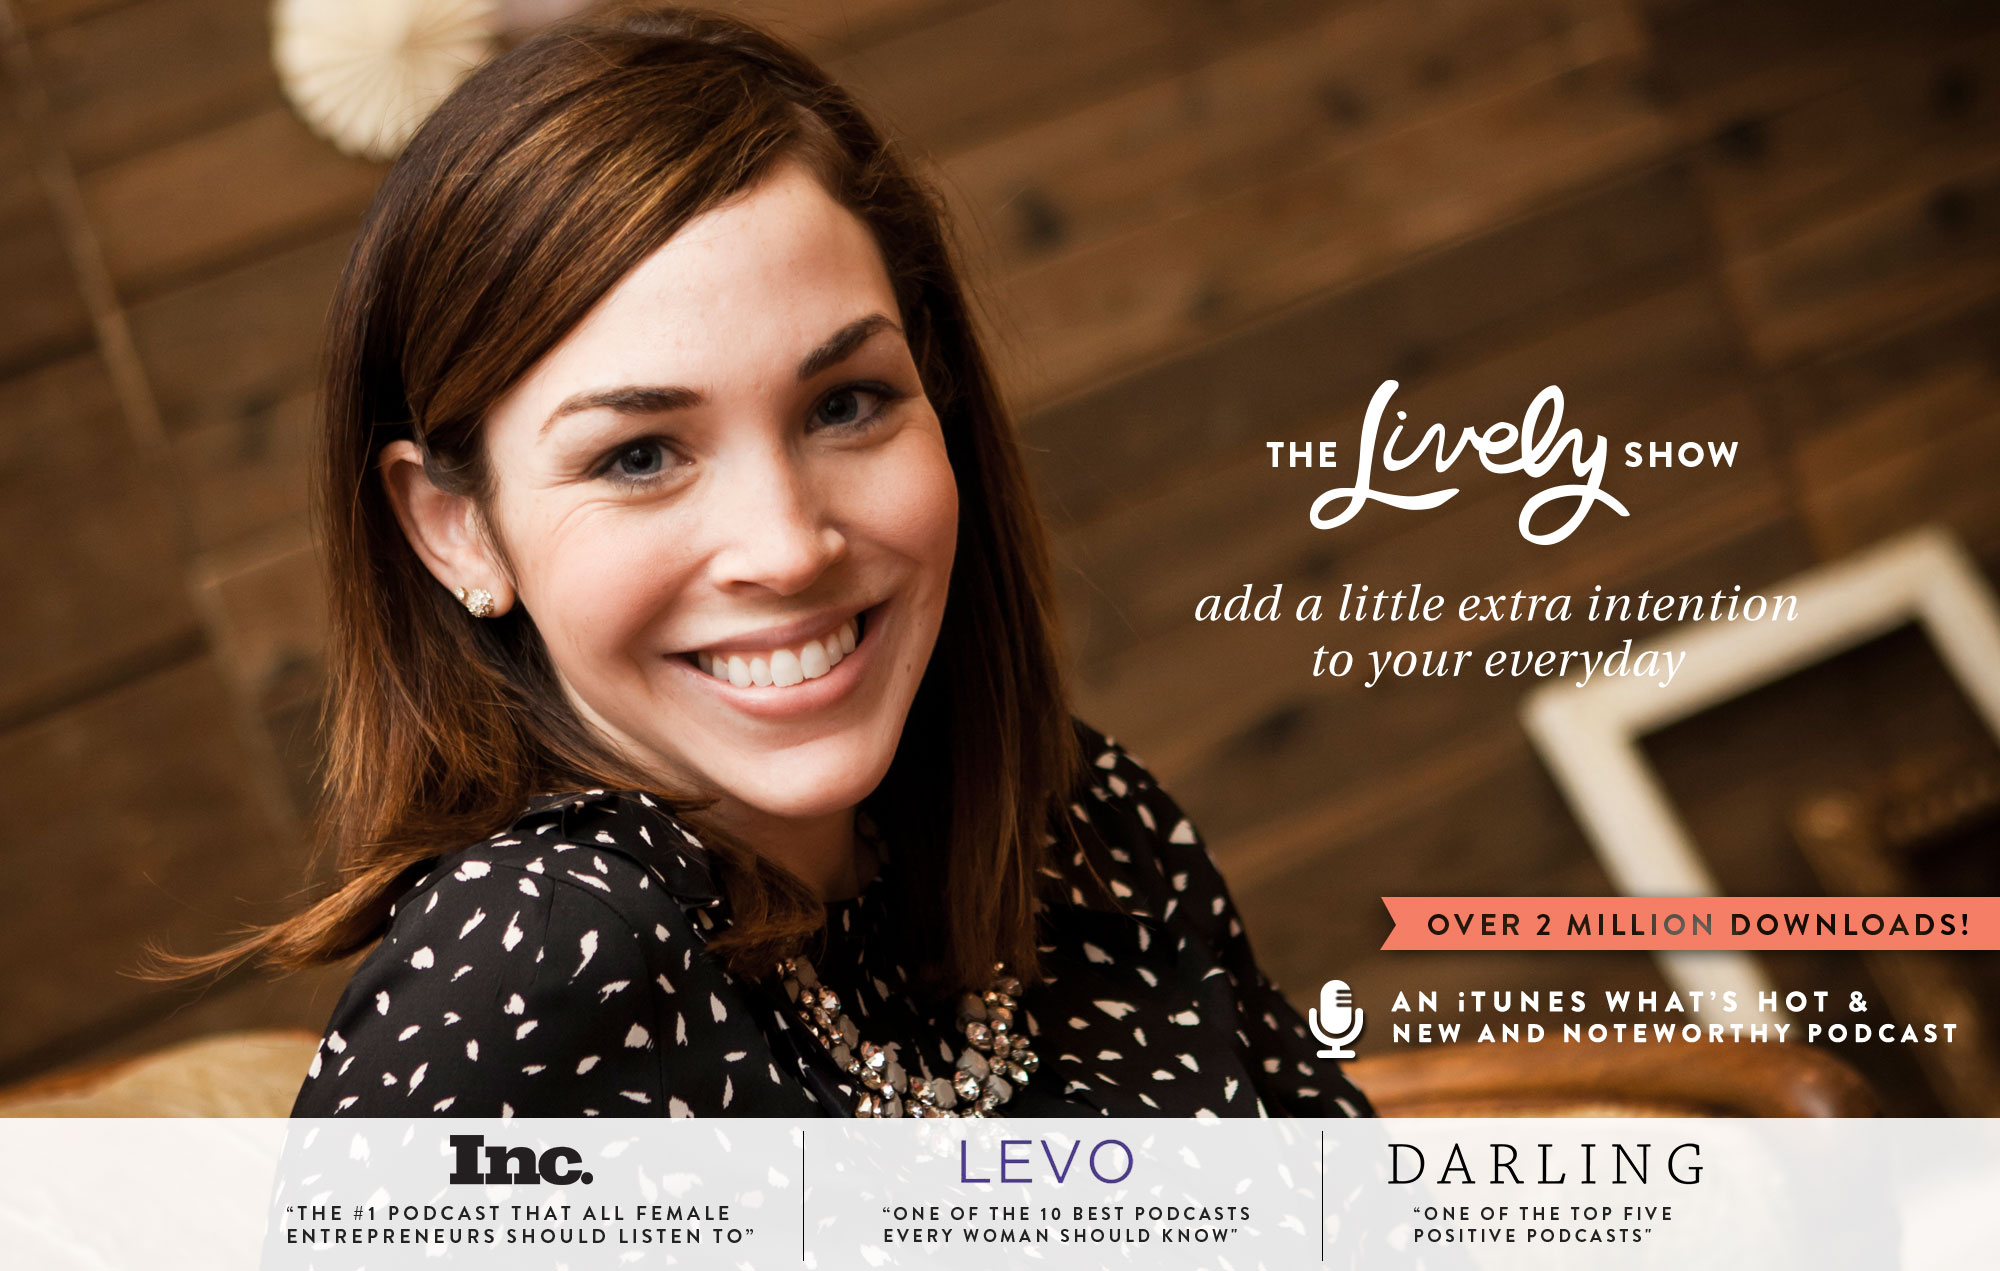 When I need inspiration, Jess Lively is where it's at. She does some of the most amazing interviews with super interesting, smart and talented individuals.